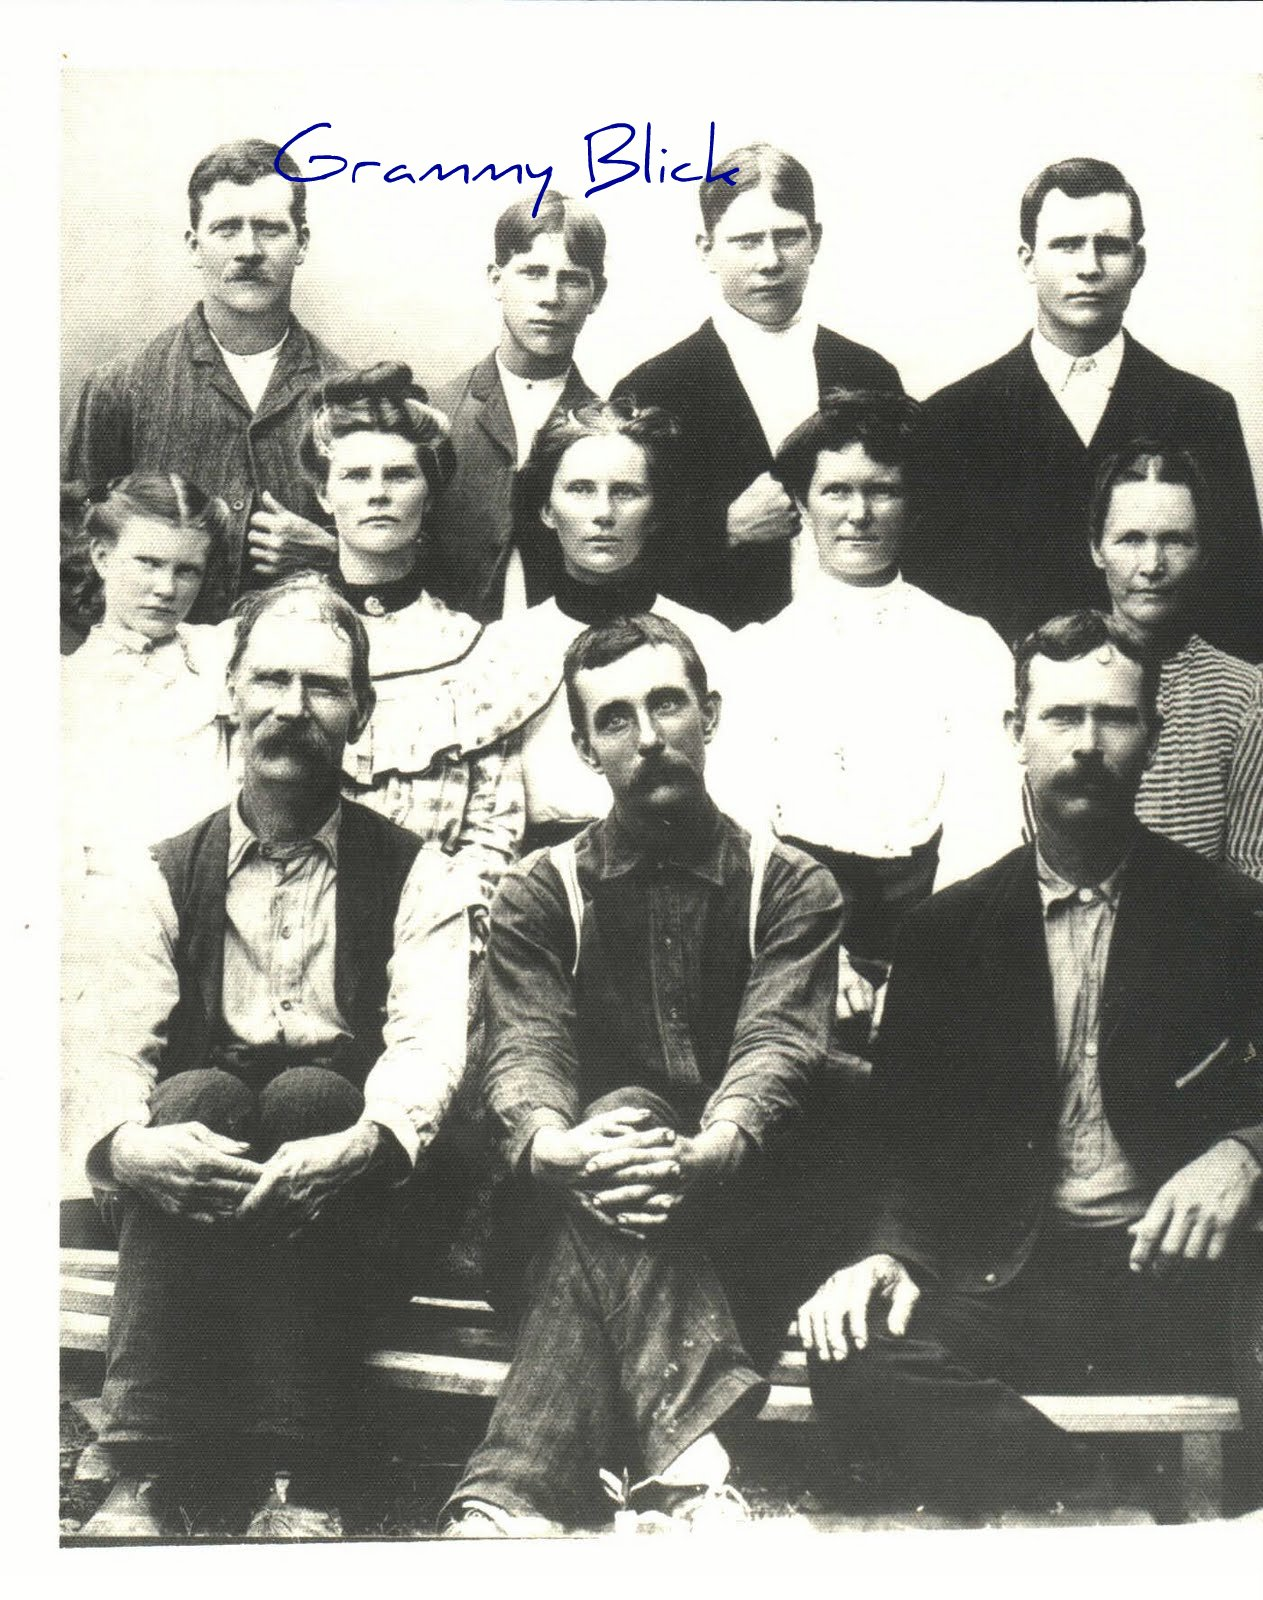 grammy blick s family workbook sion holley and family sion holley 1830 1909 and family